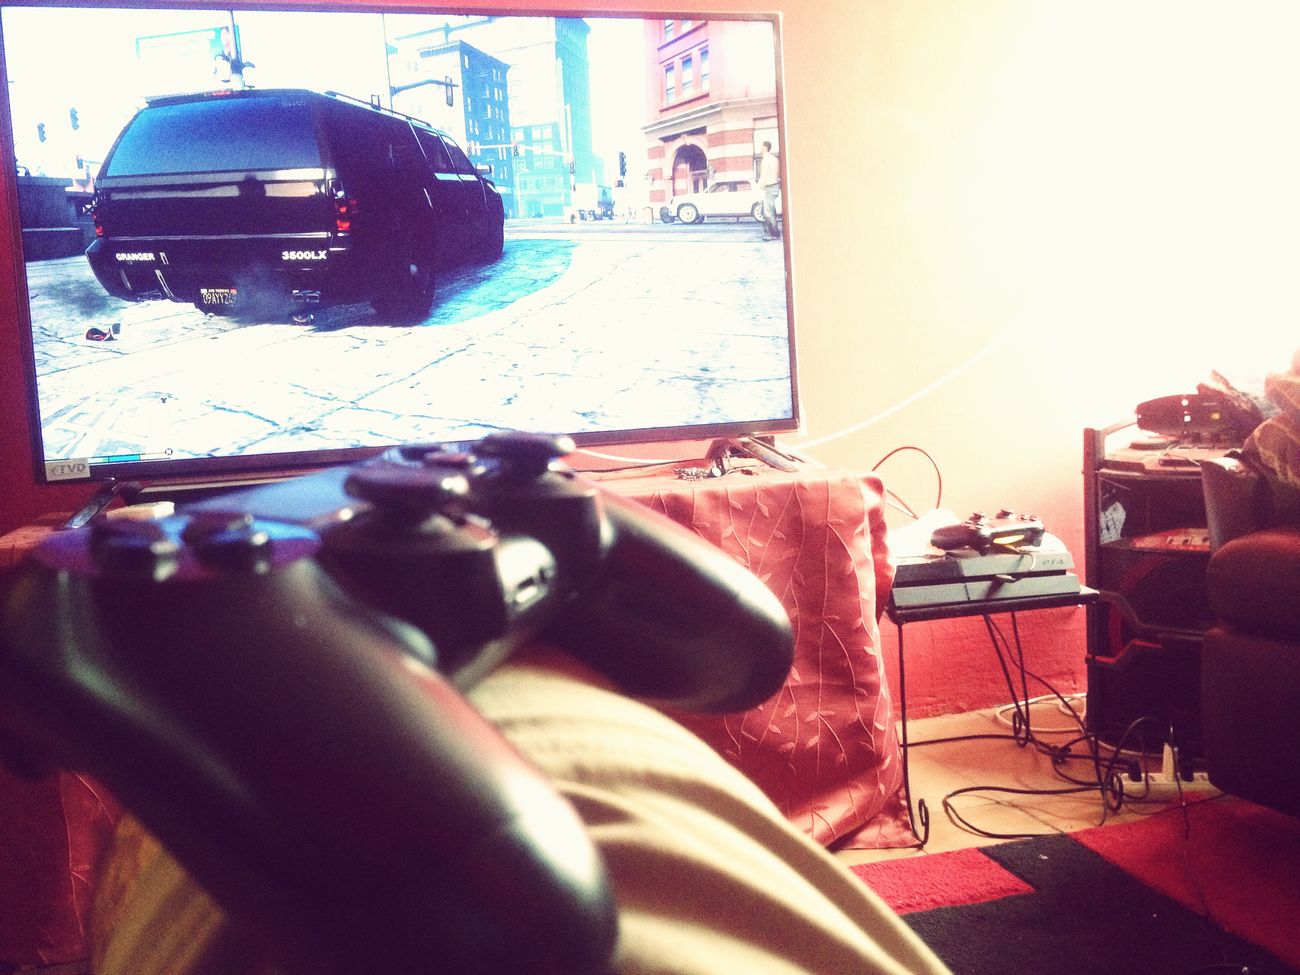 Playing GTA V. On Ps4 PS4 GTA V #basthlandert Santiago De Chile